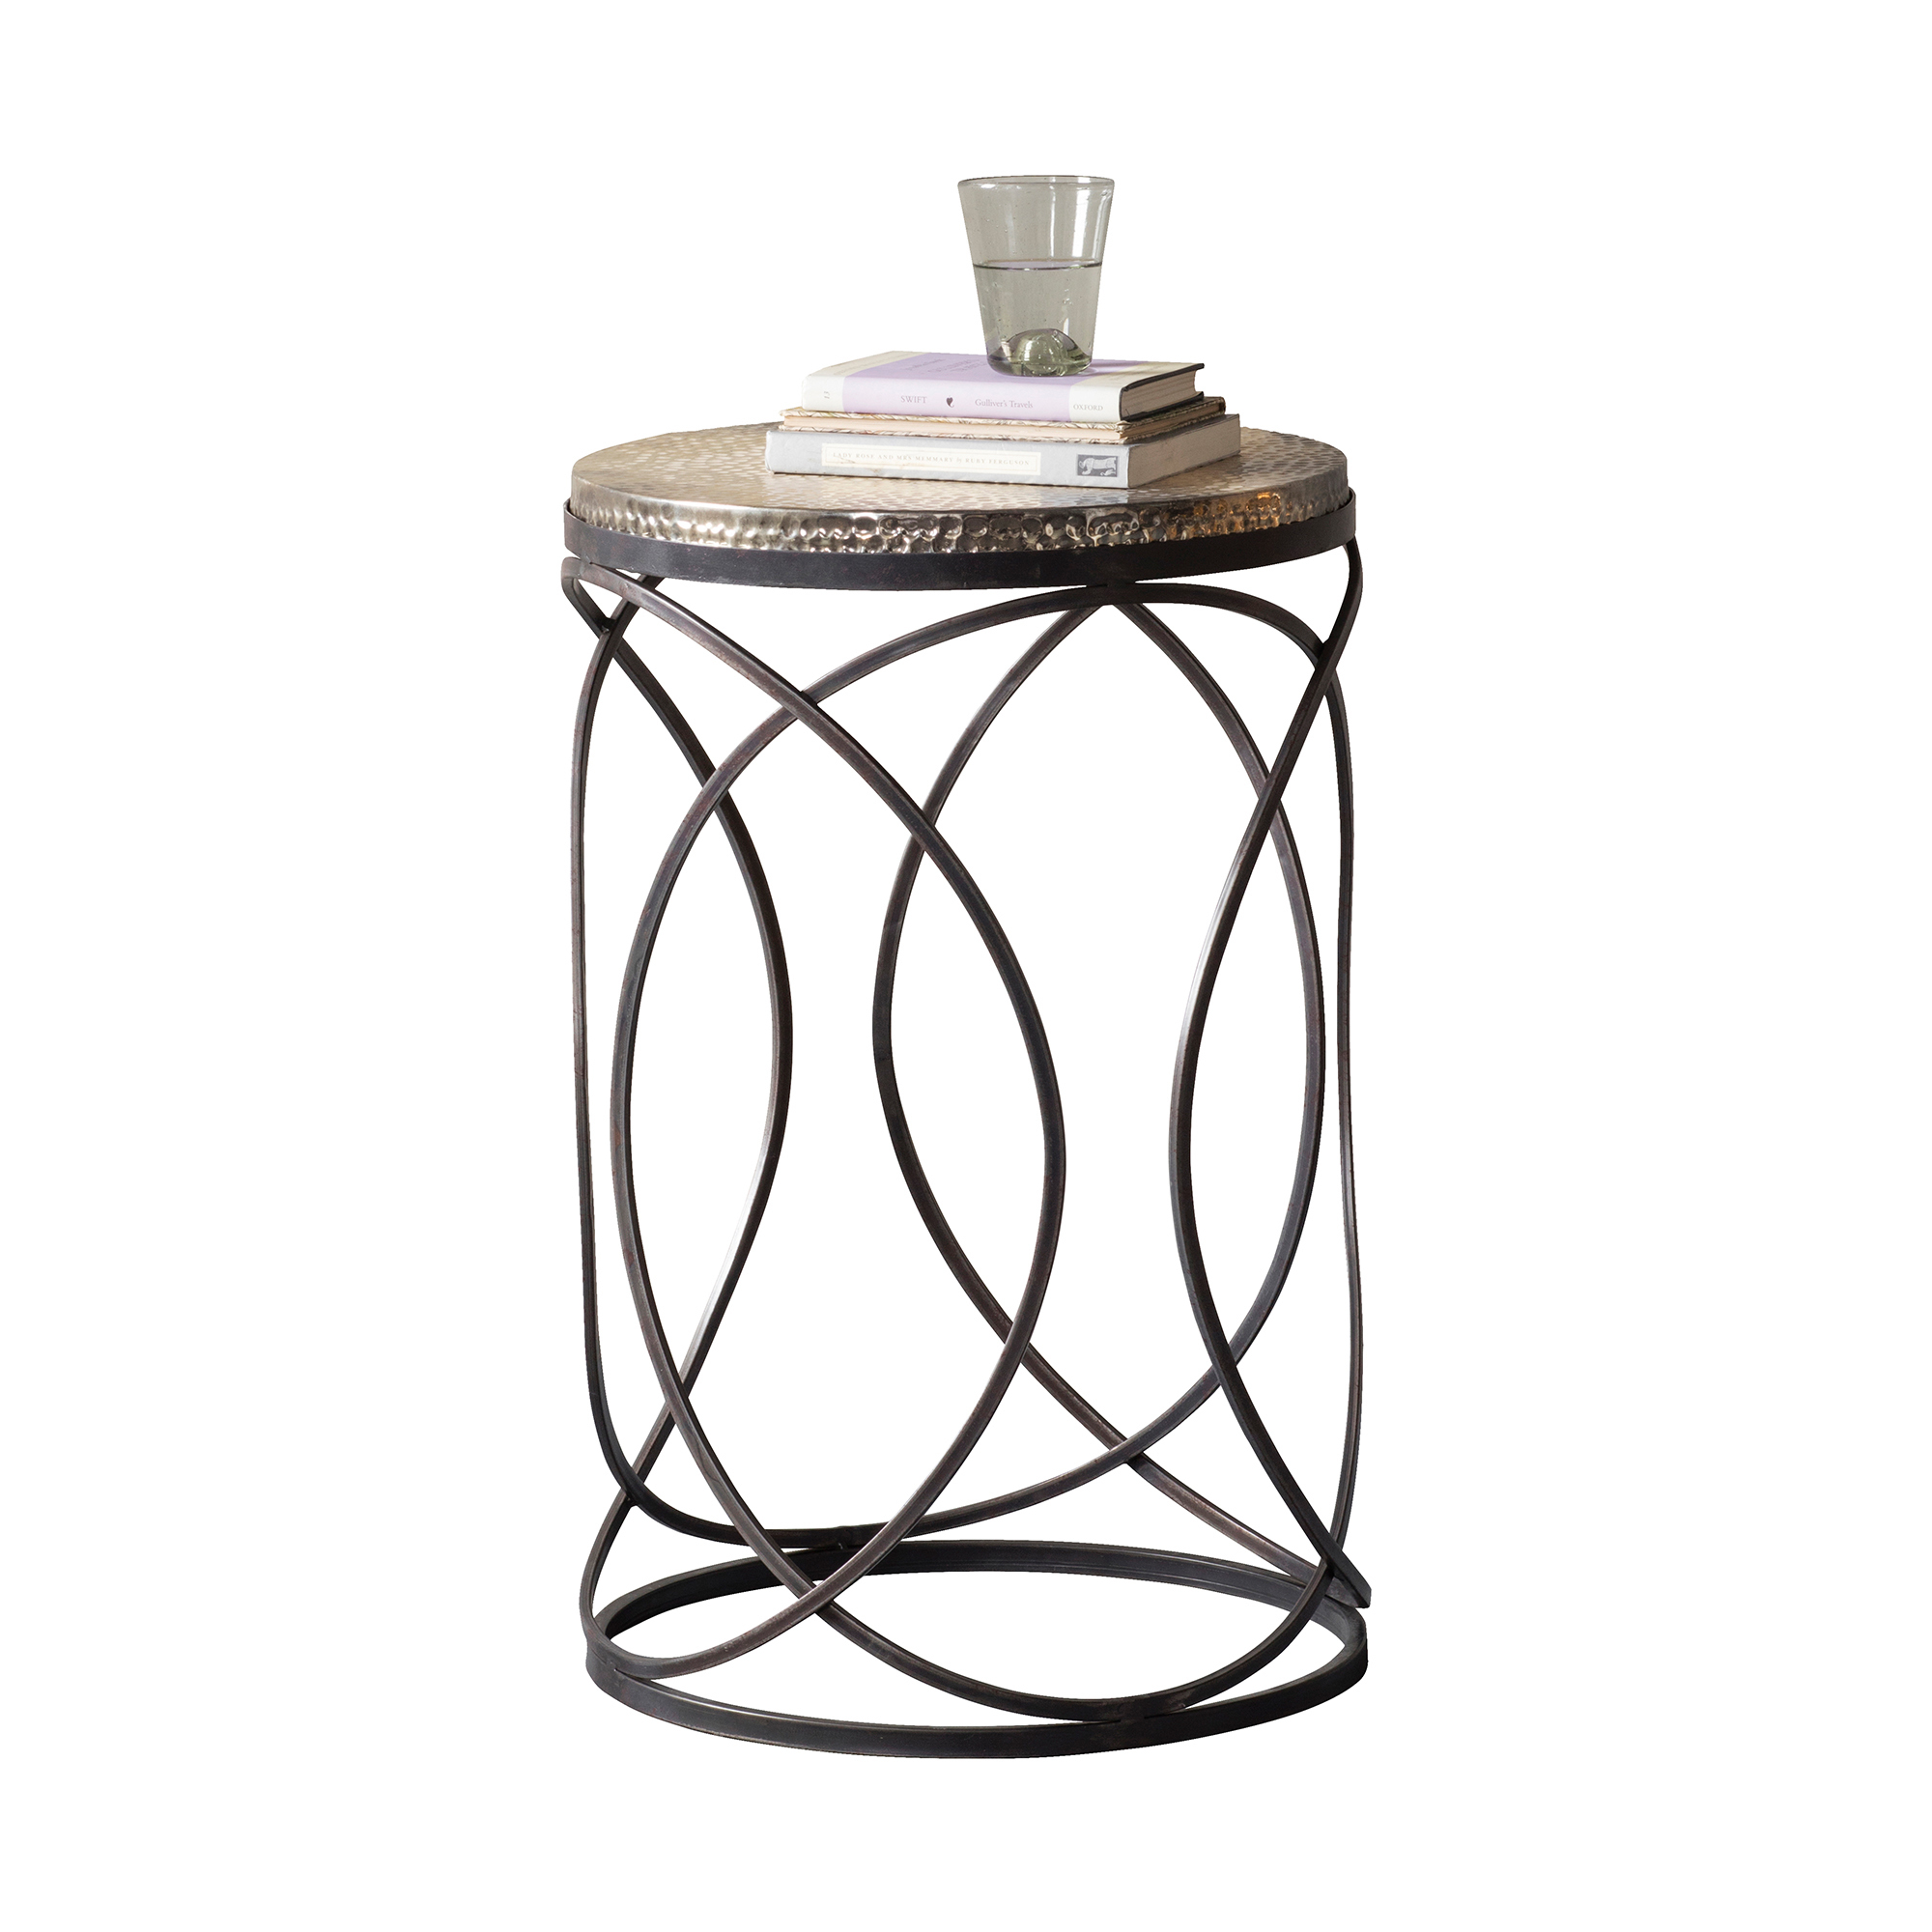 top wood shabby table itm metal aluminium cast round chic rough moroccan side sentinel jantar